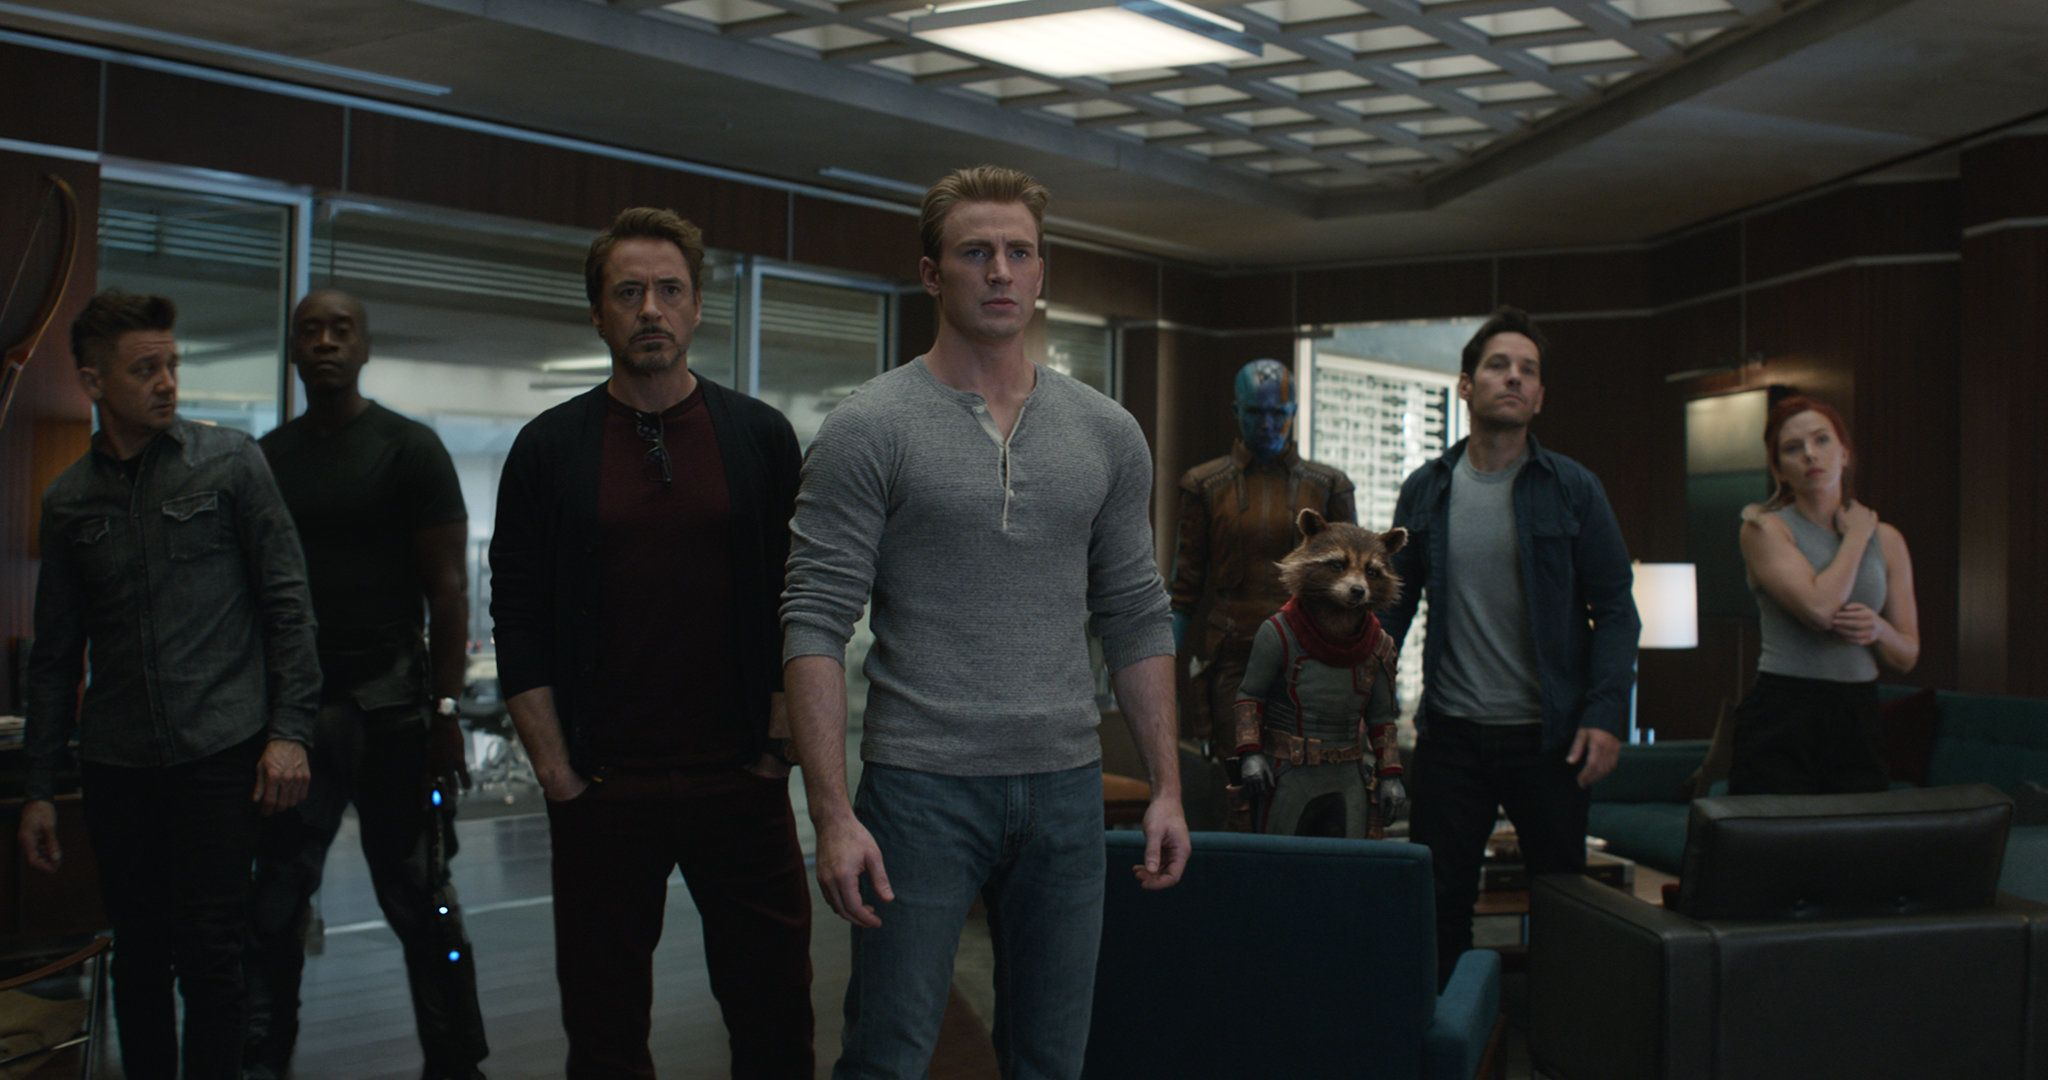 Marvel Studios' AVENGERS: ENDGAME  L to R: Hawkeye/Clint Barton (Jeremy Renner), War Machine/James Rhodey (Don Cheadle), Iron Man/Tony Stark (Robert Downey Jr.), Captain America/Steve Rogers (Chris Evans), Nebula (Karen Gillan), Rocket (voiced by Bradley Cooper), Ant-Man/Scott Lang (Paul Rudd) and Black Widow/Natasha Romanoff (Scarlett Johansson)  Photo: Film Frame  ©Marvel Studios 2019